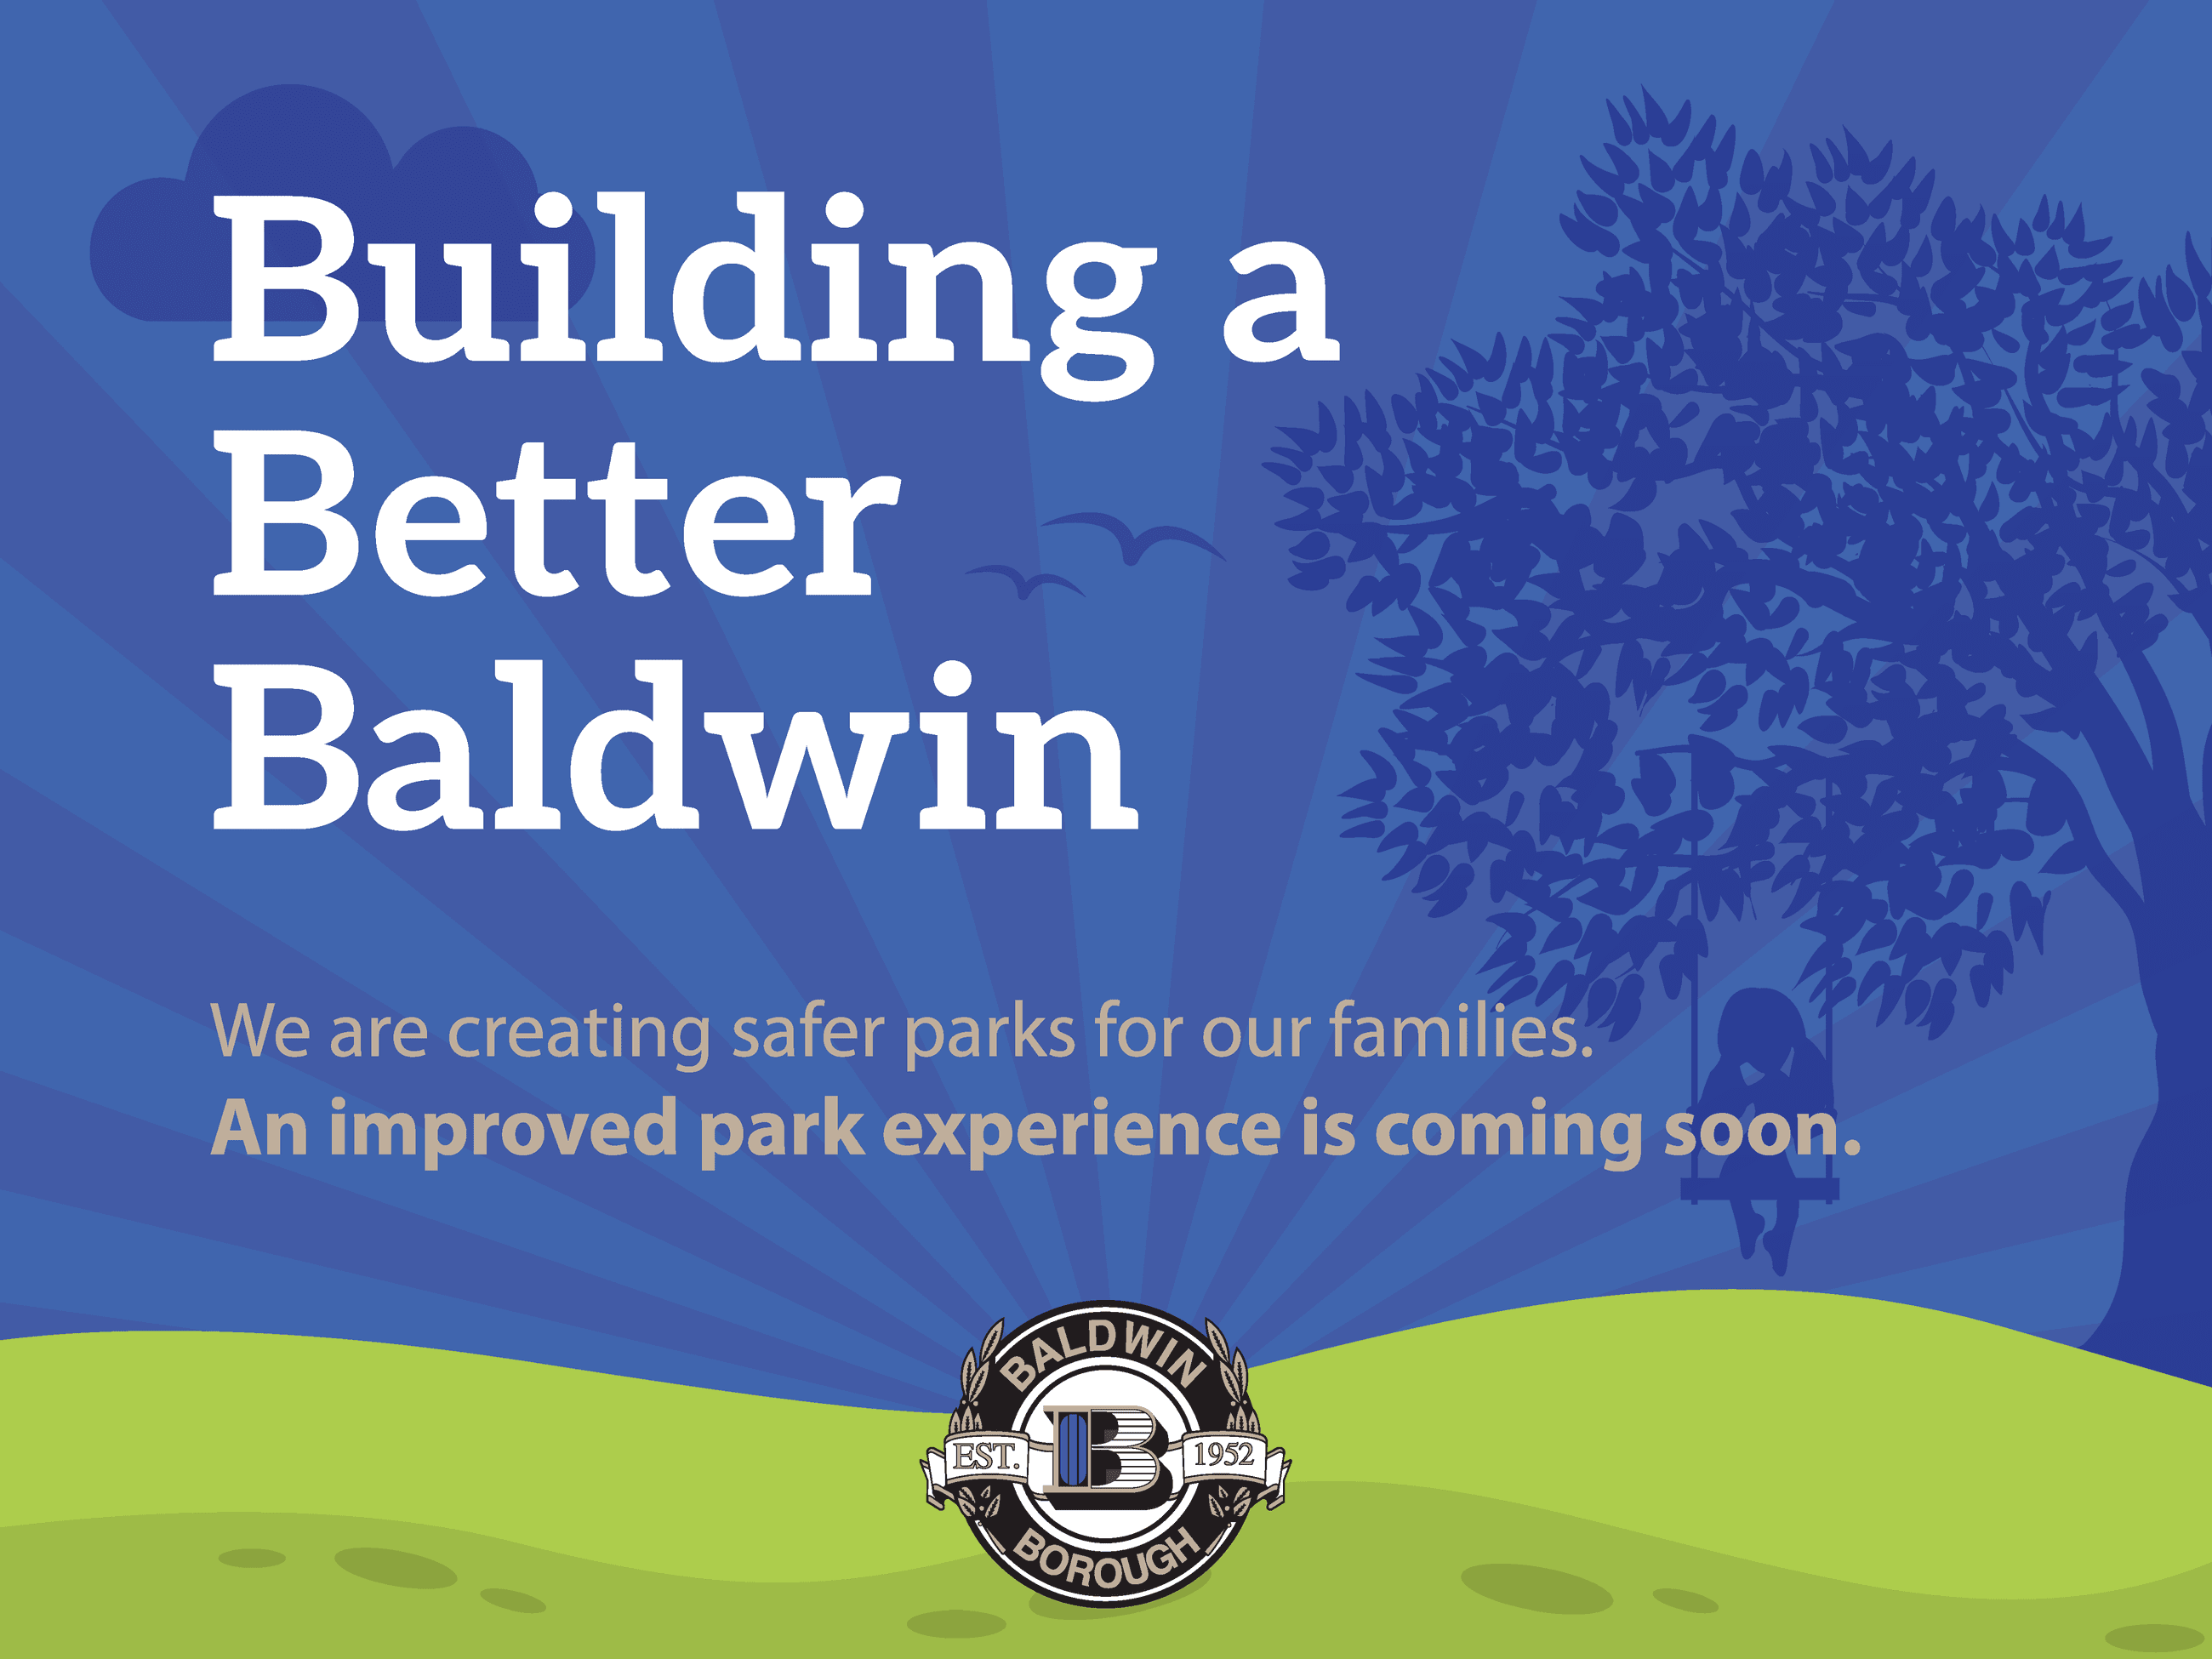 Building a Better Baldwin